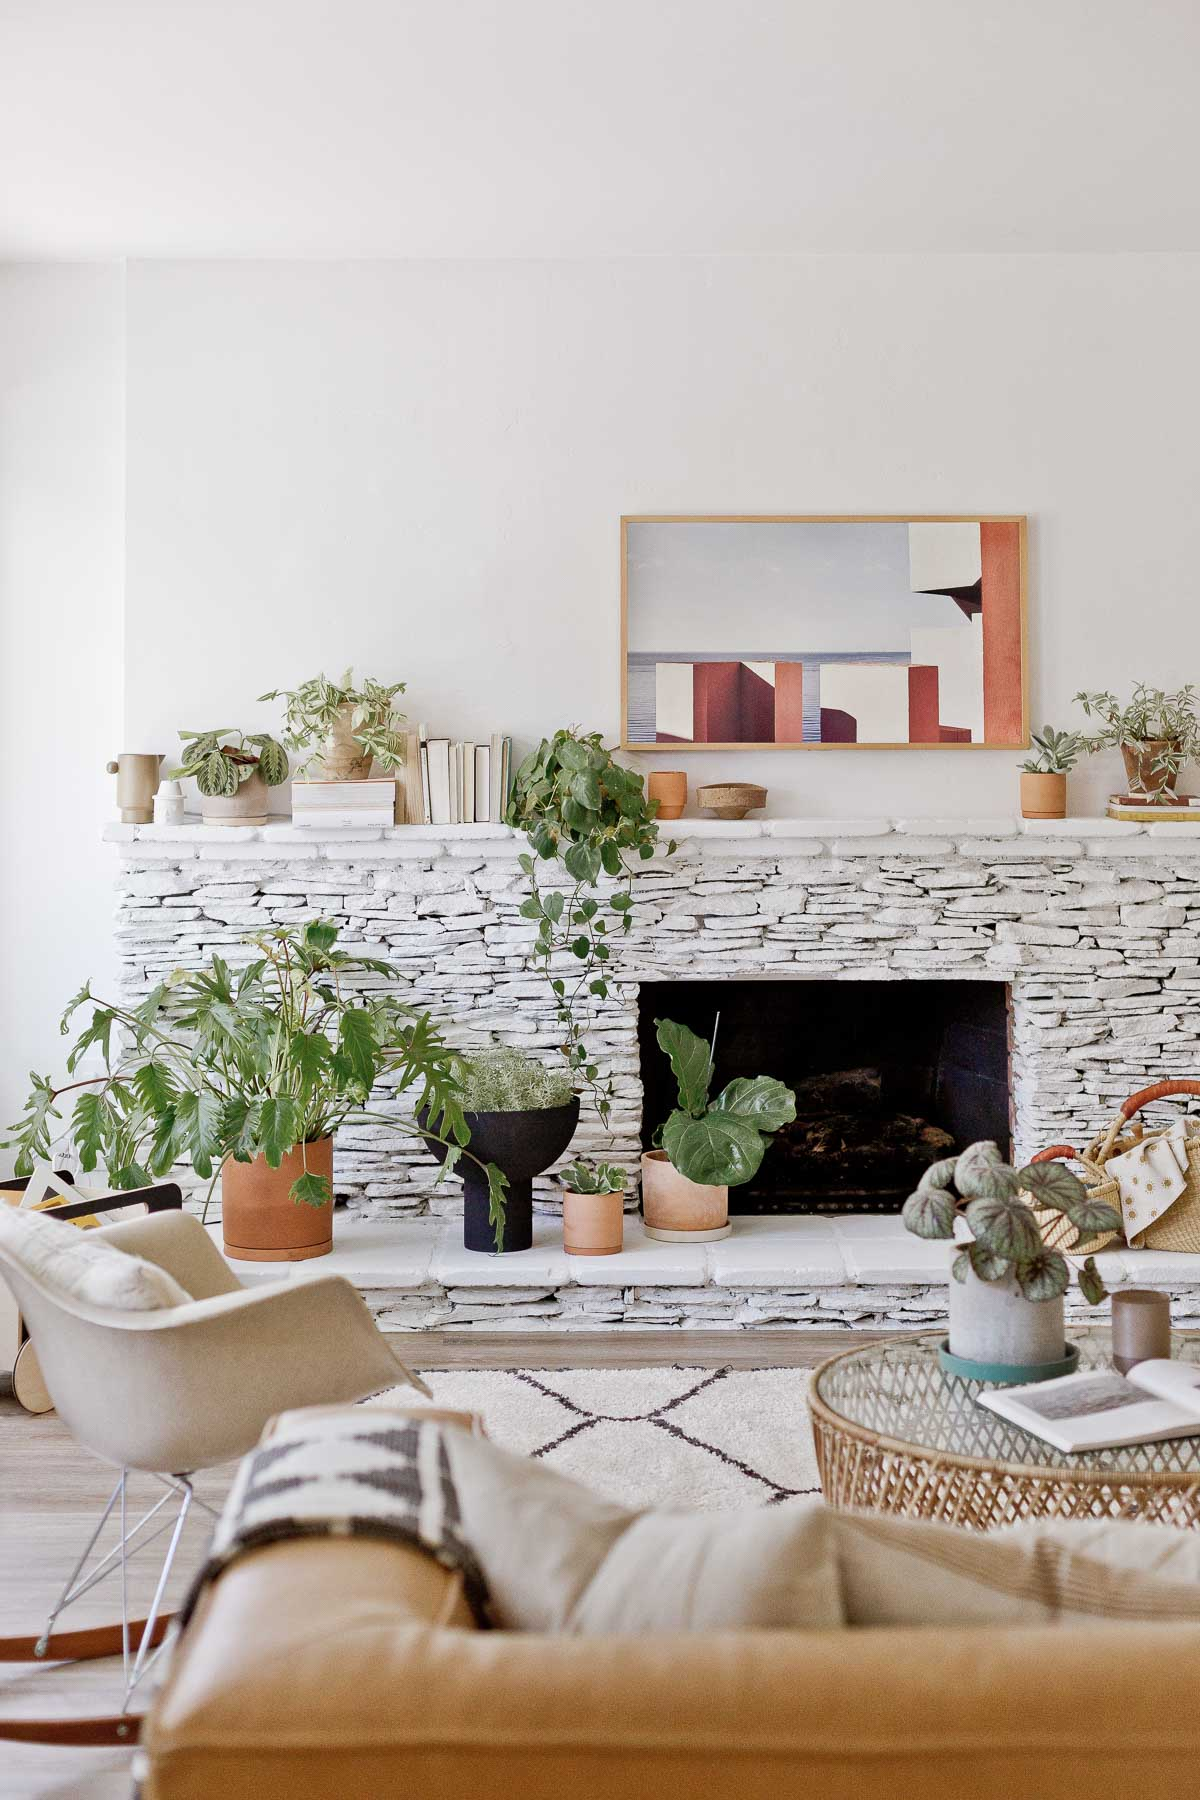 painted white fireplace with many plants and books, iim a living room space